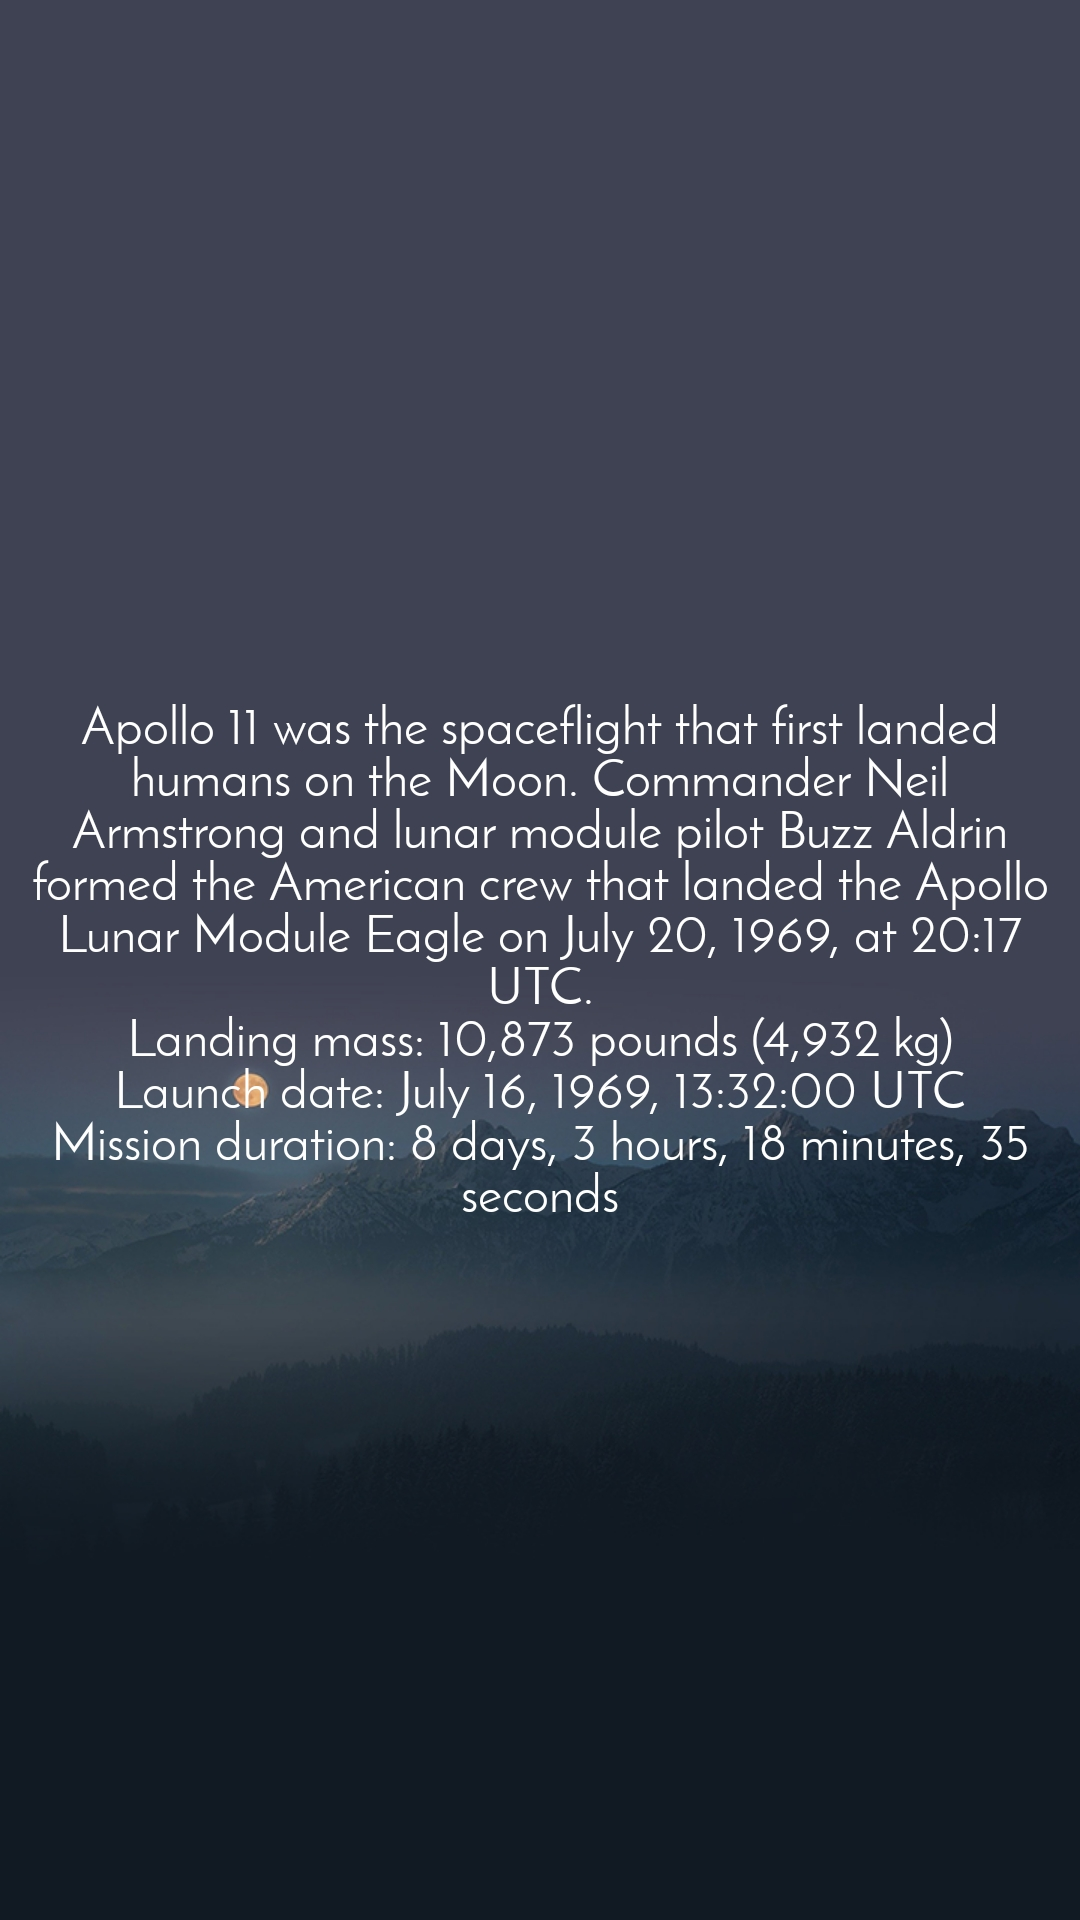 Apollo 11 was the spaceflight that first landed humans on the Moon. Commander Neil Armstrong and lunar module pilot Buzz Aldrin formed the American crew that landed the Apollo Lunar Module Eagle on July 20, 1969, at 20:17 UTC. Landing mass: 10,873 pounds (4,932 kg) Launch date: July 16, 1969, 13:32:00 UTC Mission duration: 8 days, 3 hours, 18 minutes, 35 seconds